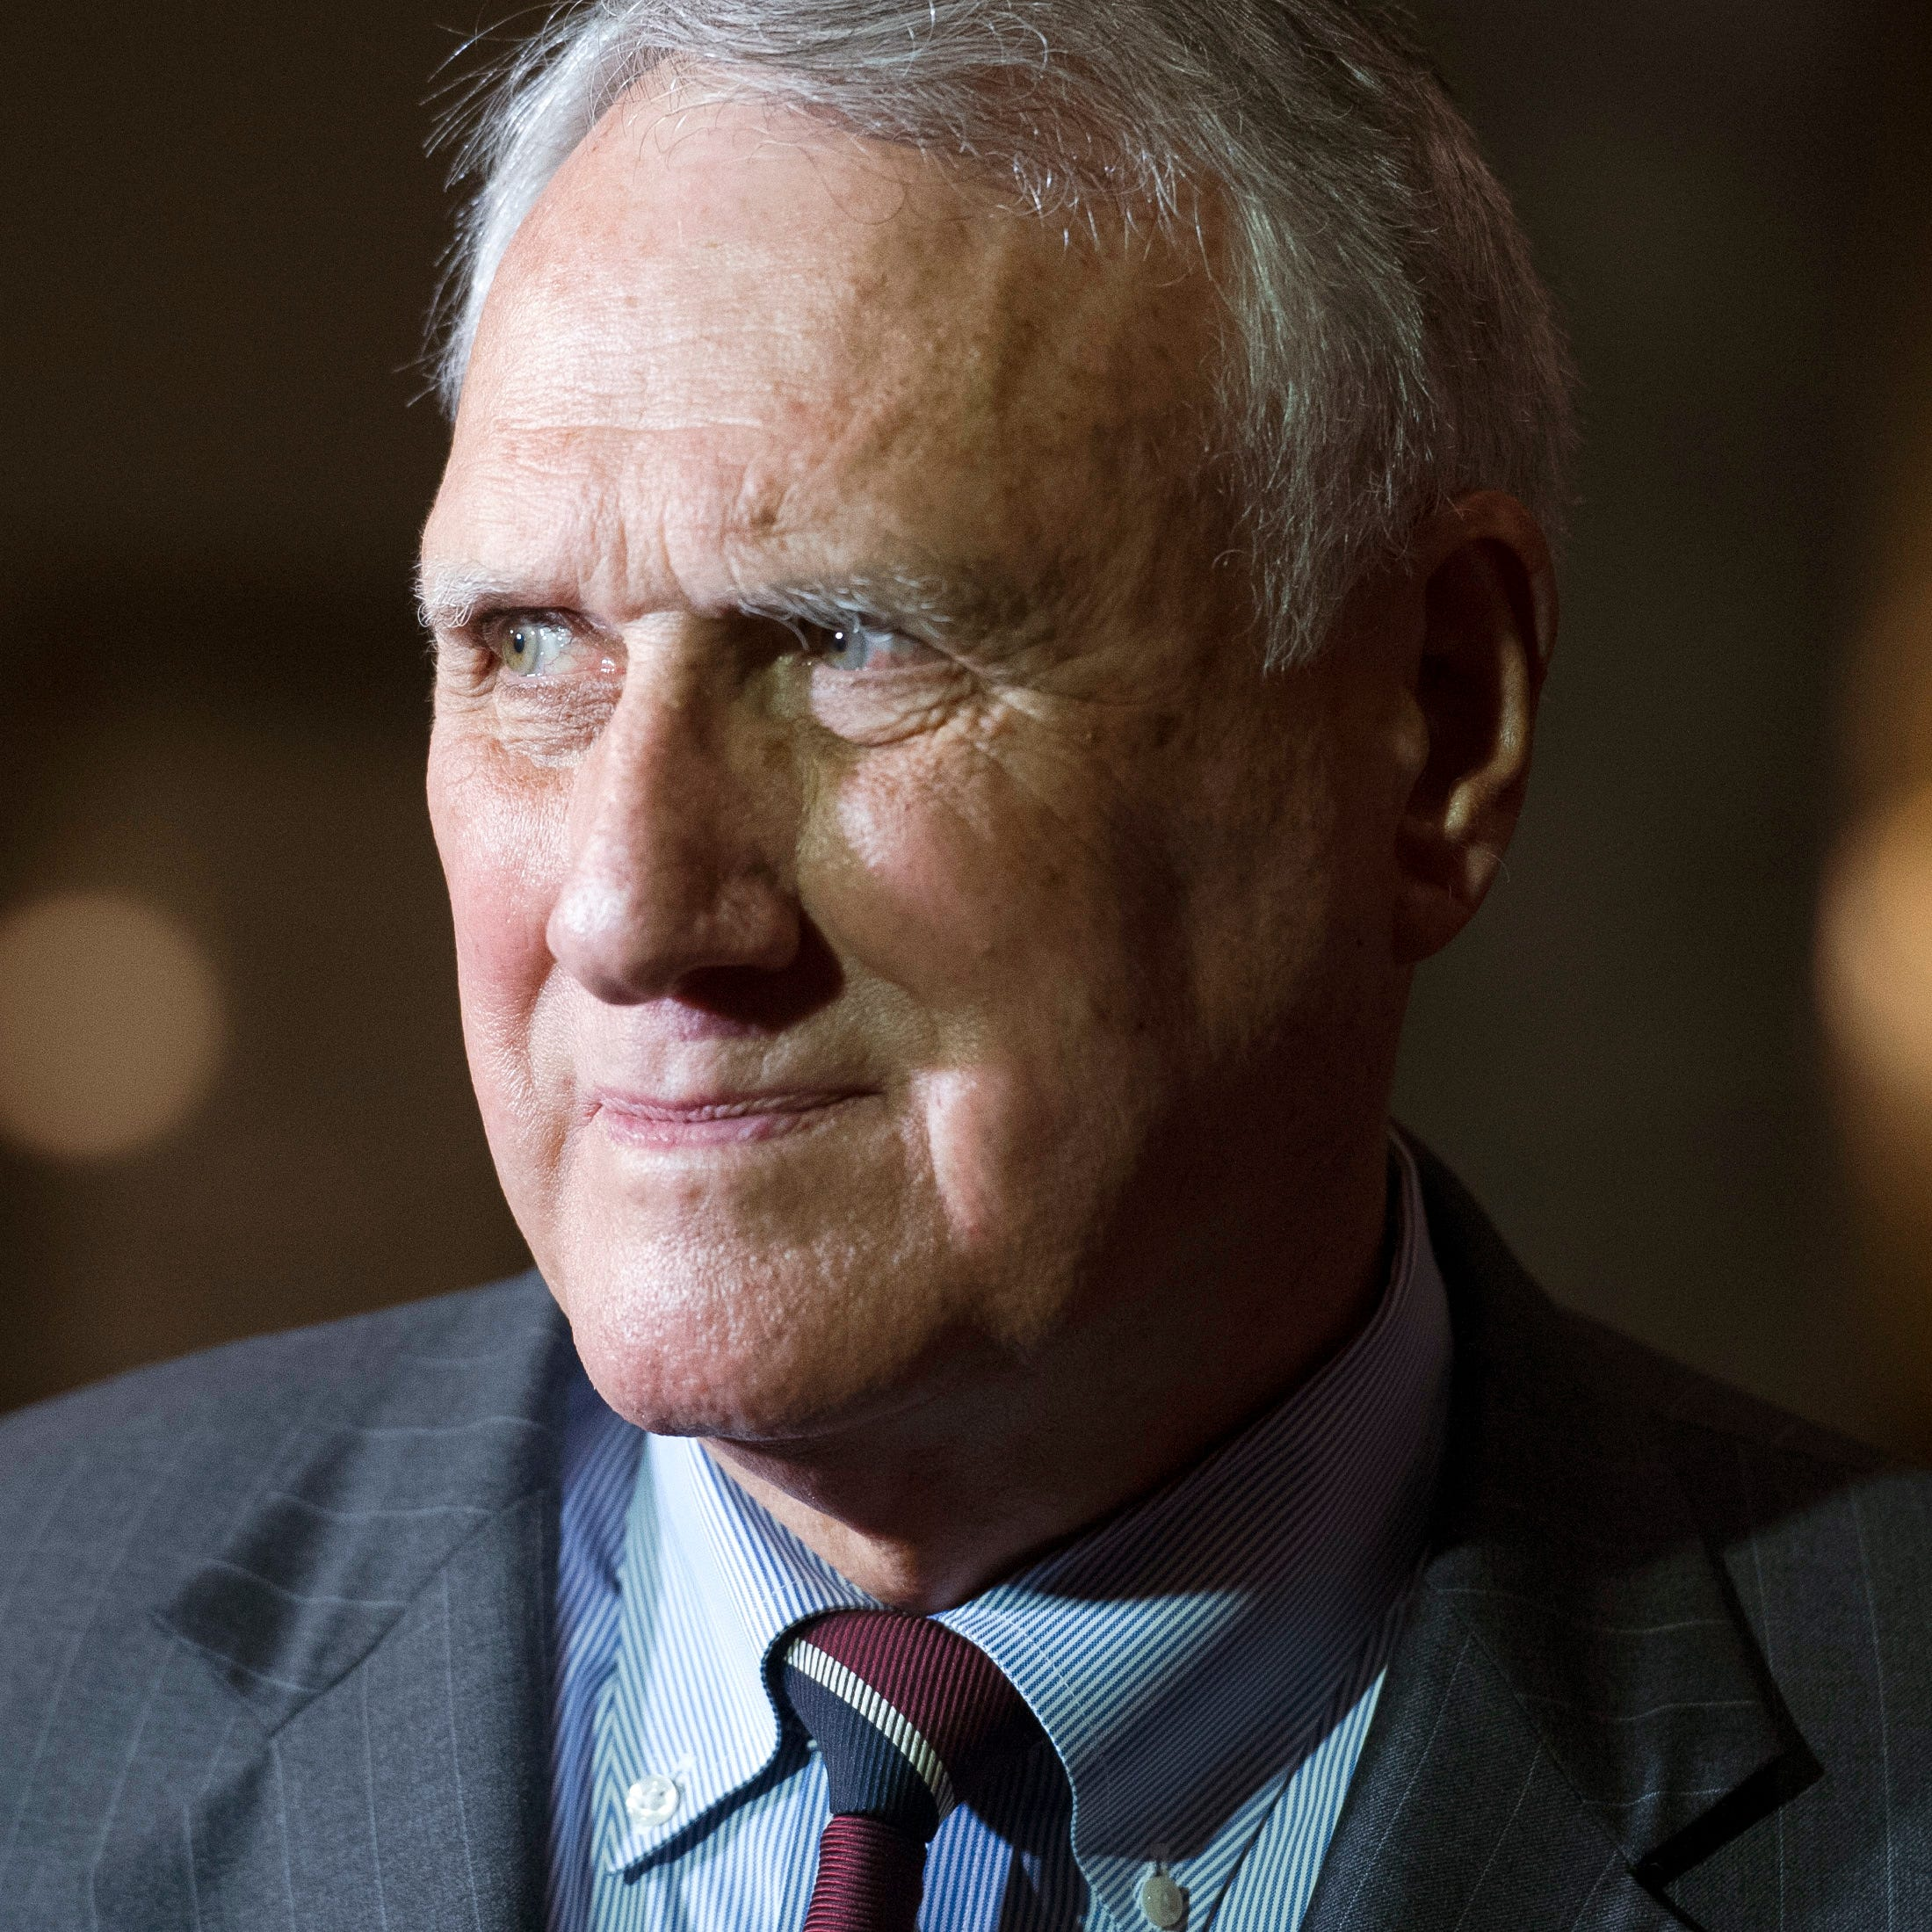 Jon Kyl's undeniable conflict should preclude him from voting on Brett Kavanaugh nomination